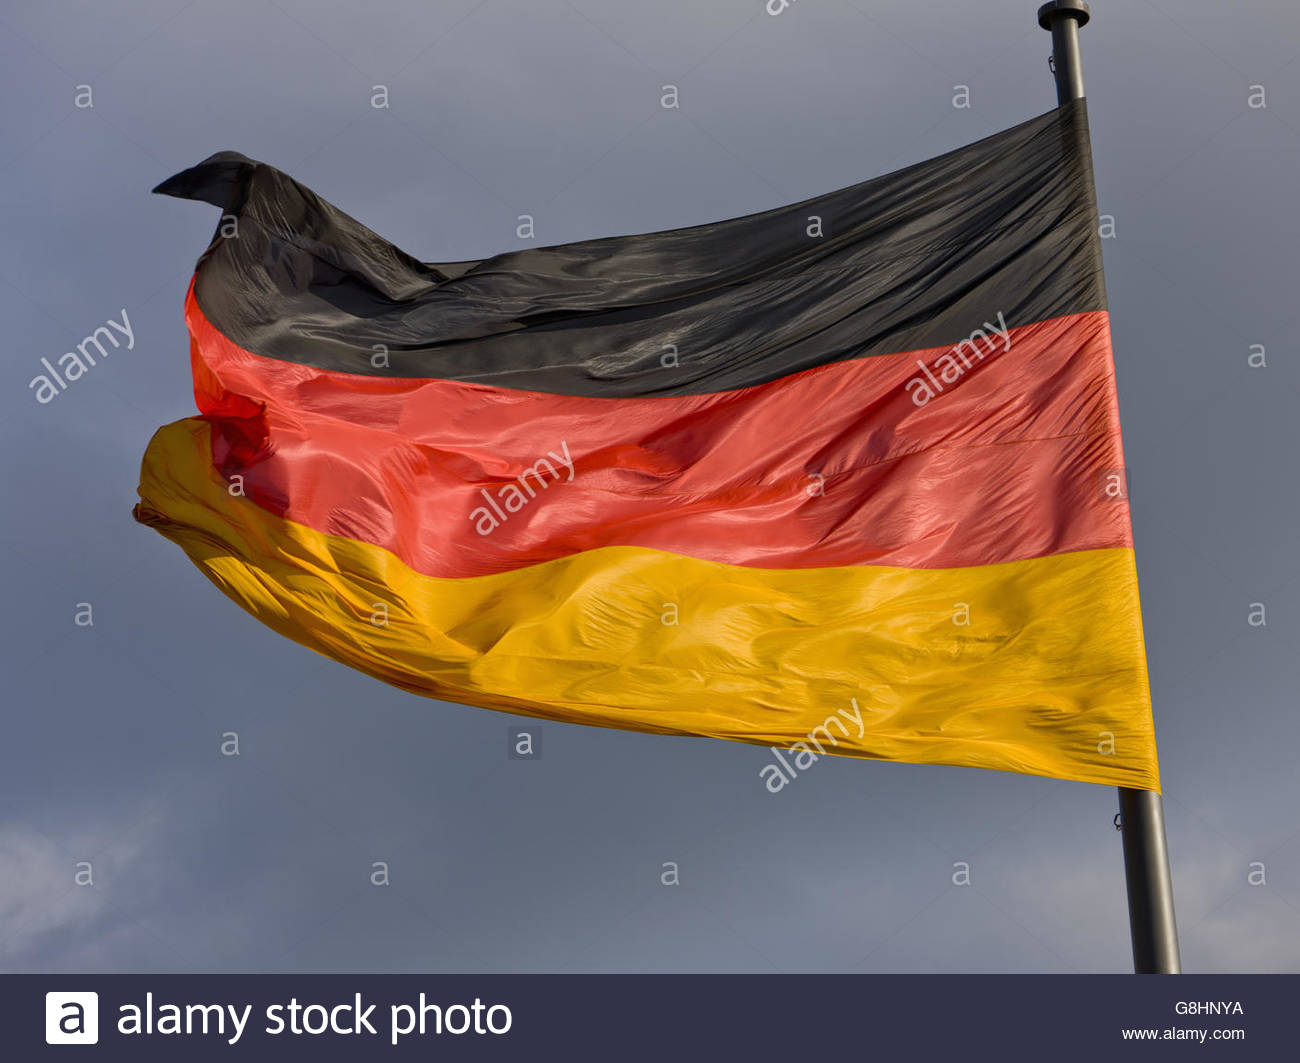 German Flag at Reichstag building, Berlin, Germany - Stock Image